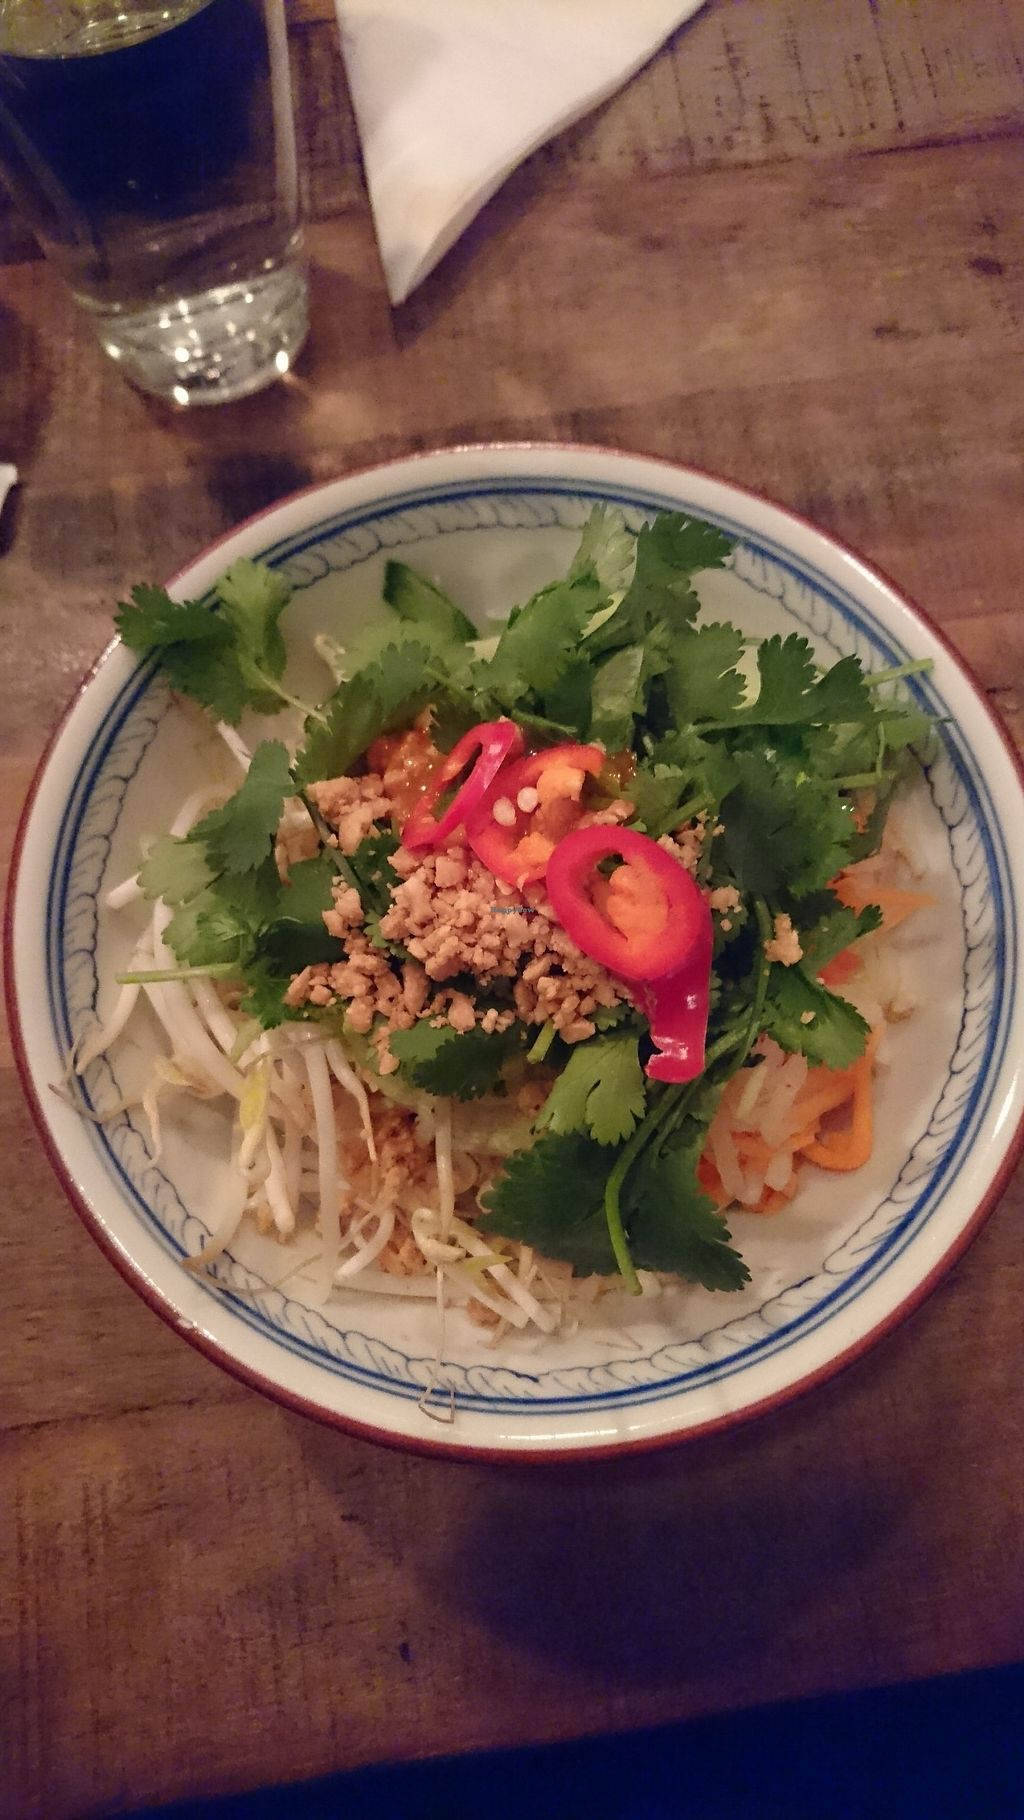 """Photo of District Tonkin  by <a href=""""/members/profile/YayVeganFood"""">YayVeganFood</a> <br/>Bun Chay - Rice Noodle Salad with Steamed Tofu <br/> February 17, 2018  - <a href='/contact/abuse/image/111411/360498'>Report</a>"""